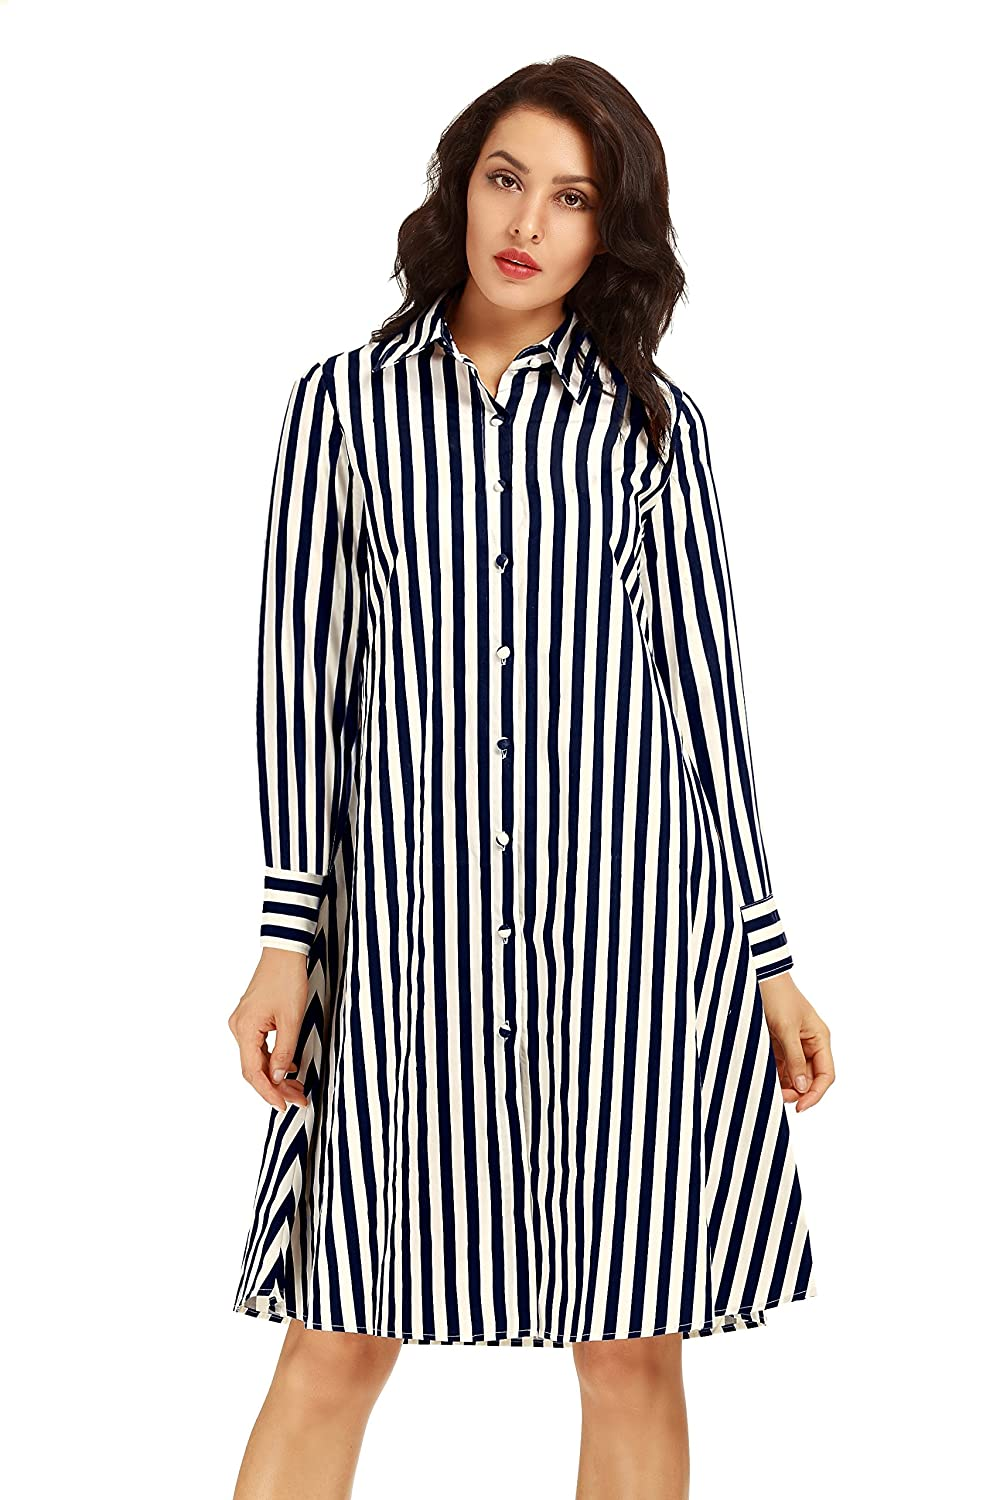 Neo Wows Womens Casual Stripe Cotton Short Sleeve Button Down Shirt